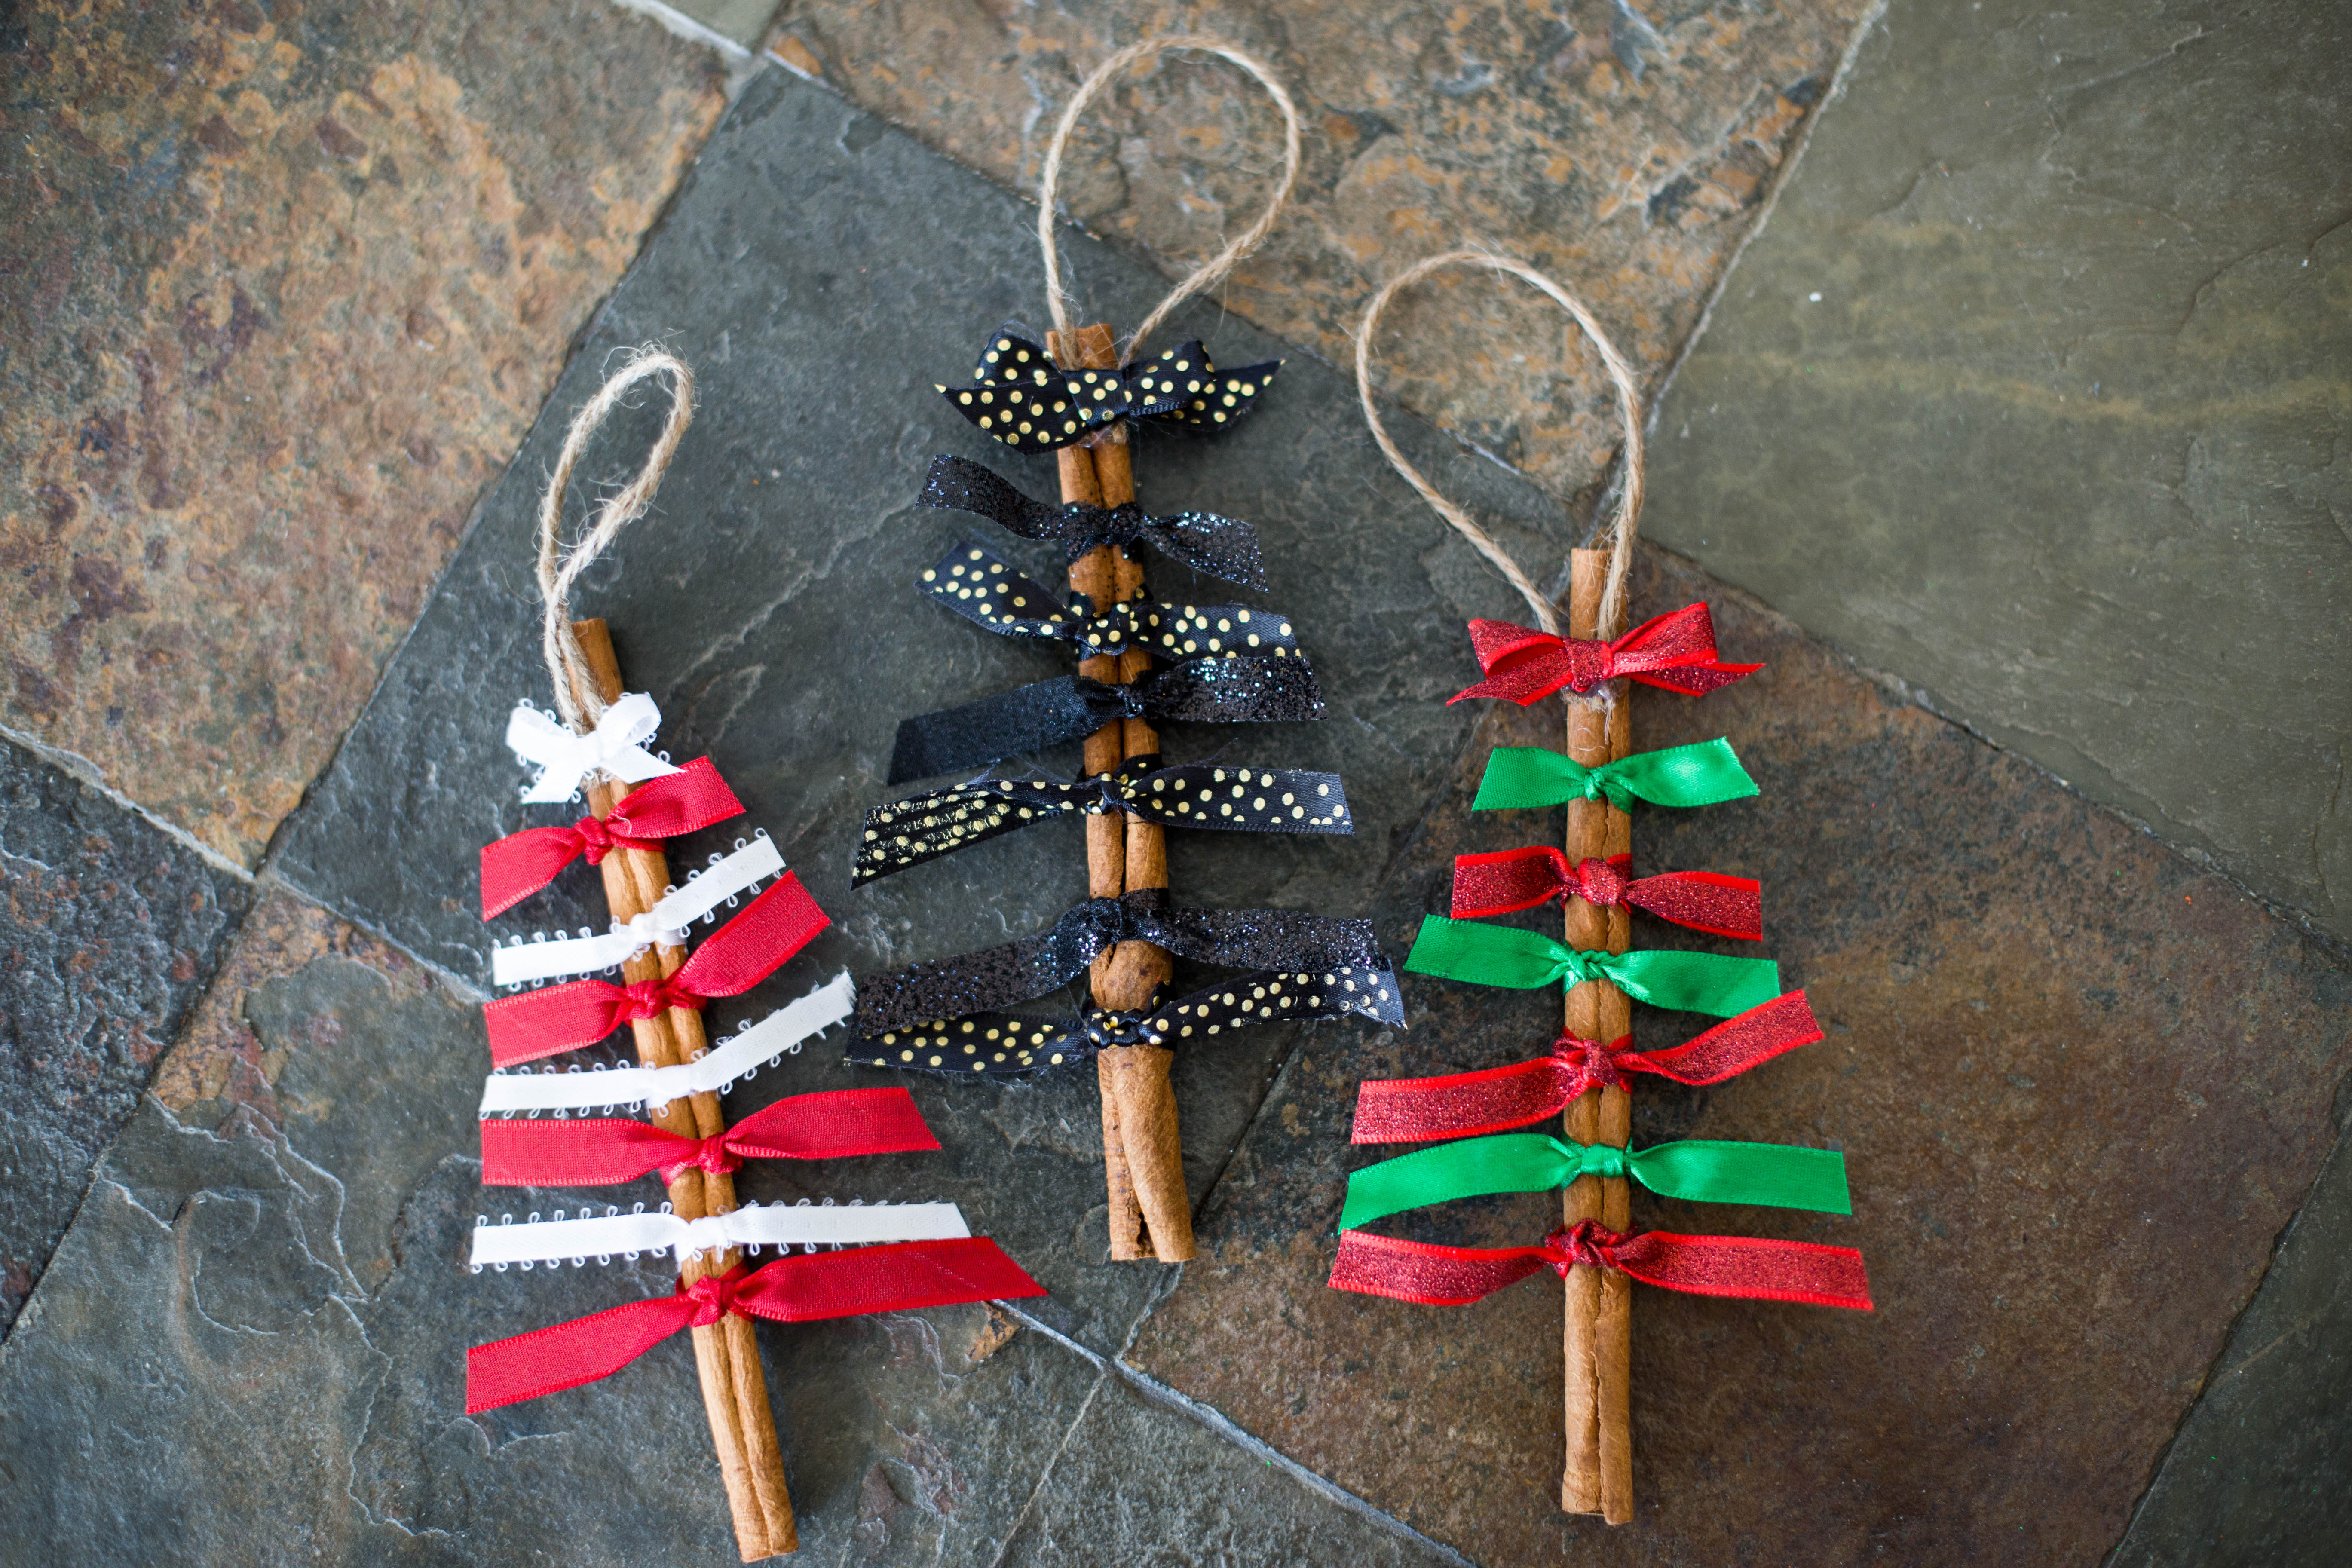 Cinnamon sticks for crafts - Quick And Easy To Make These Cinnamon Stick Christmas Ornaments Will Add A Darling Look